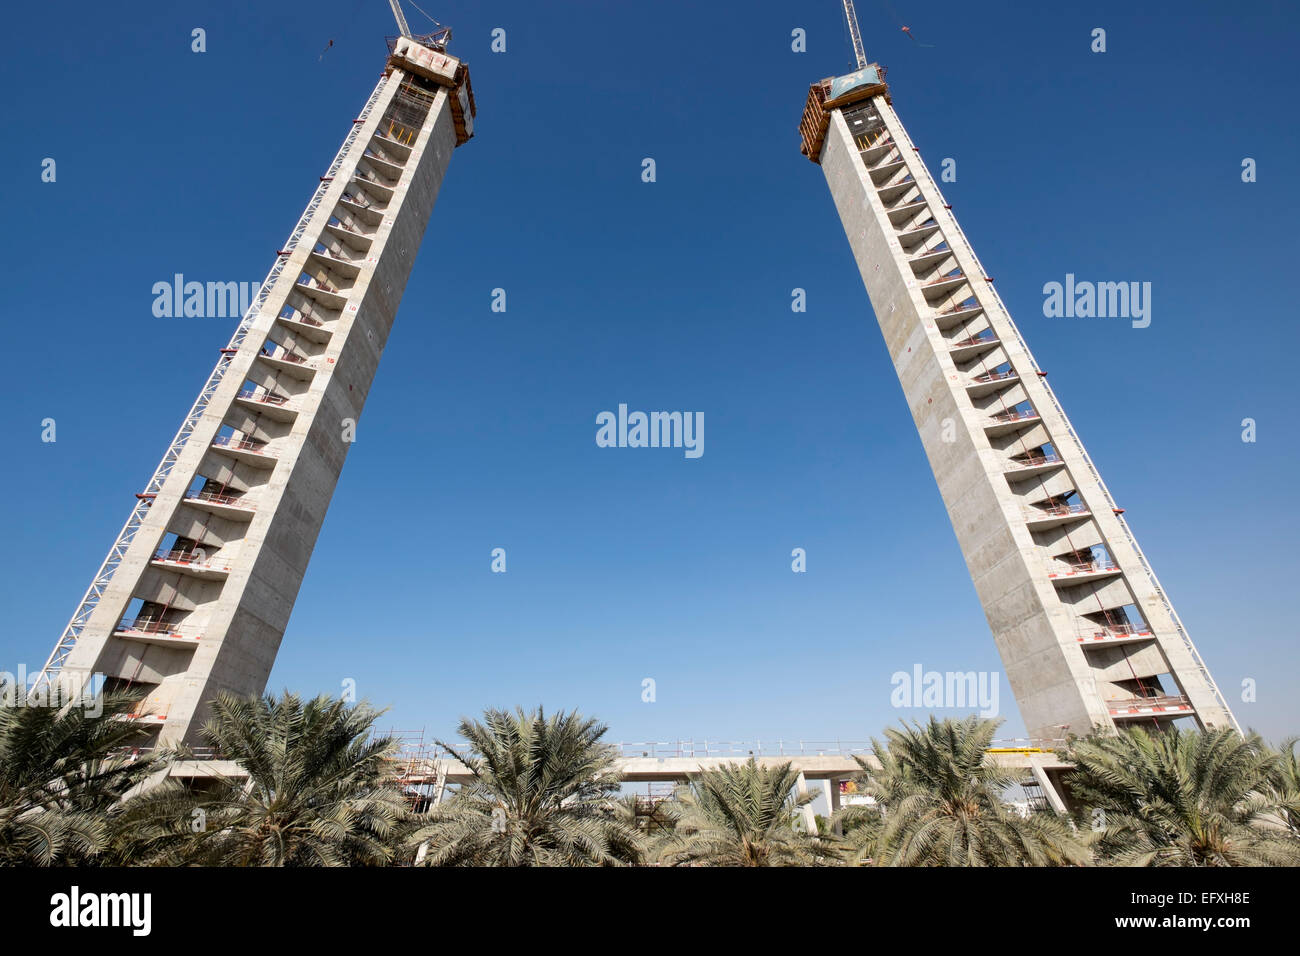 Construction of the Dubai Frame, a new landmark tourist attraction with observation platform in Zabeel Park Dubai - Stock Image